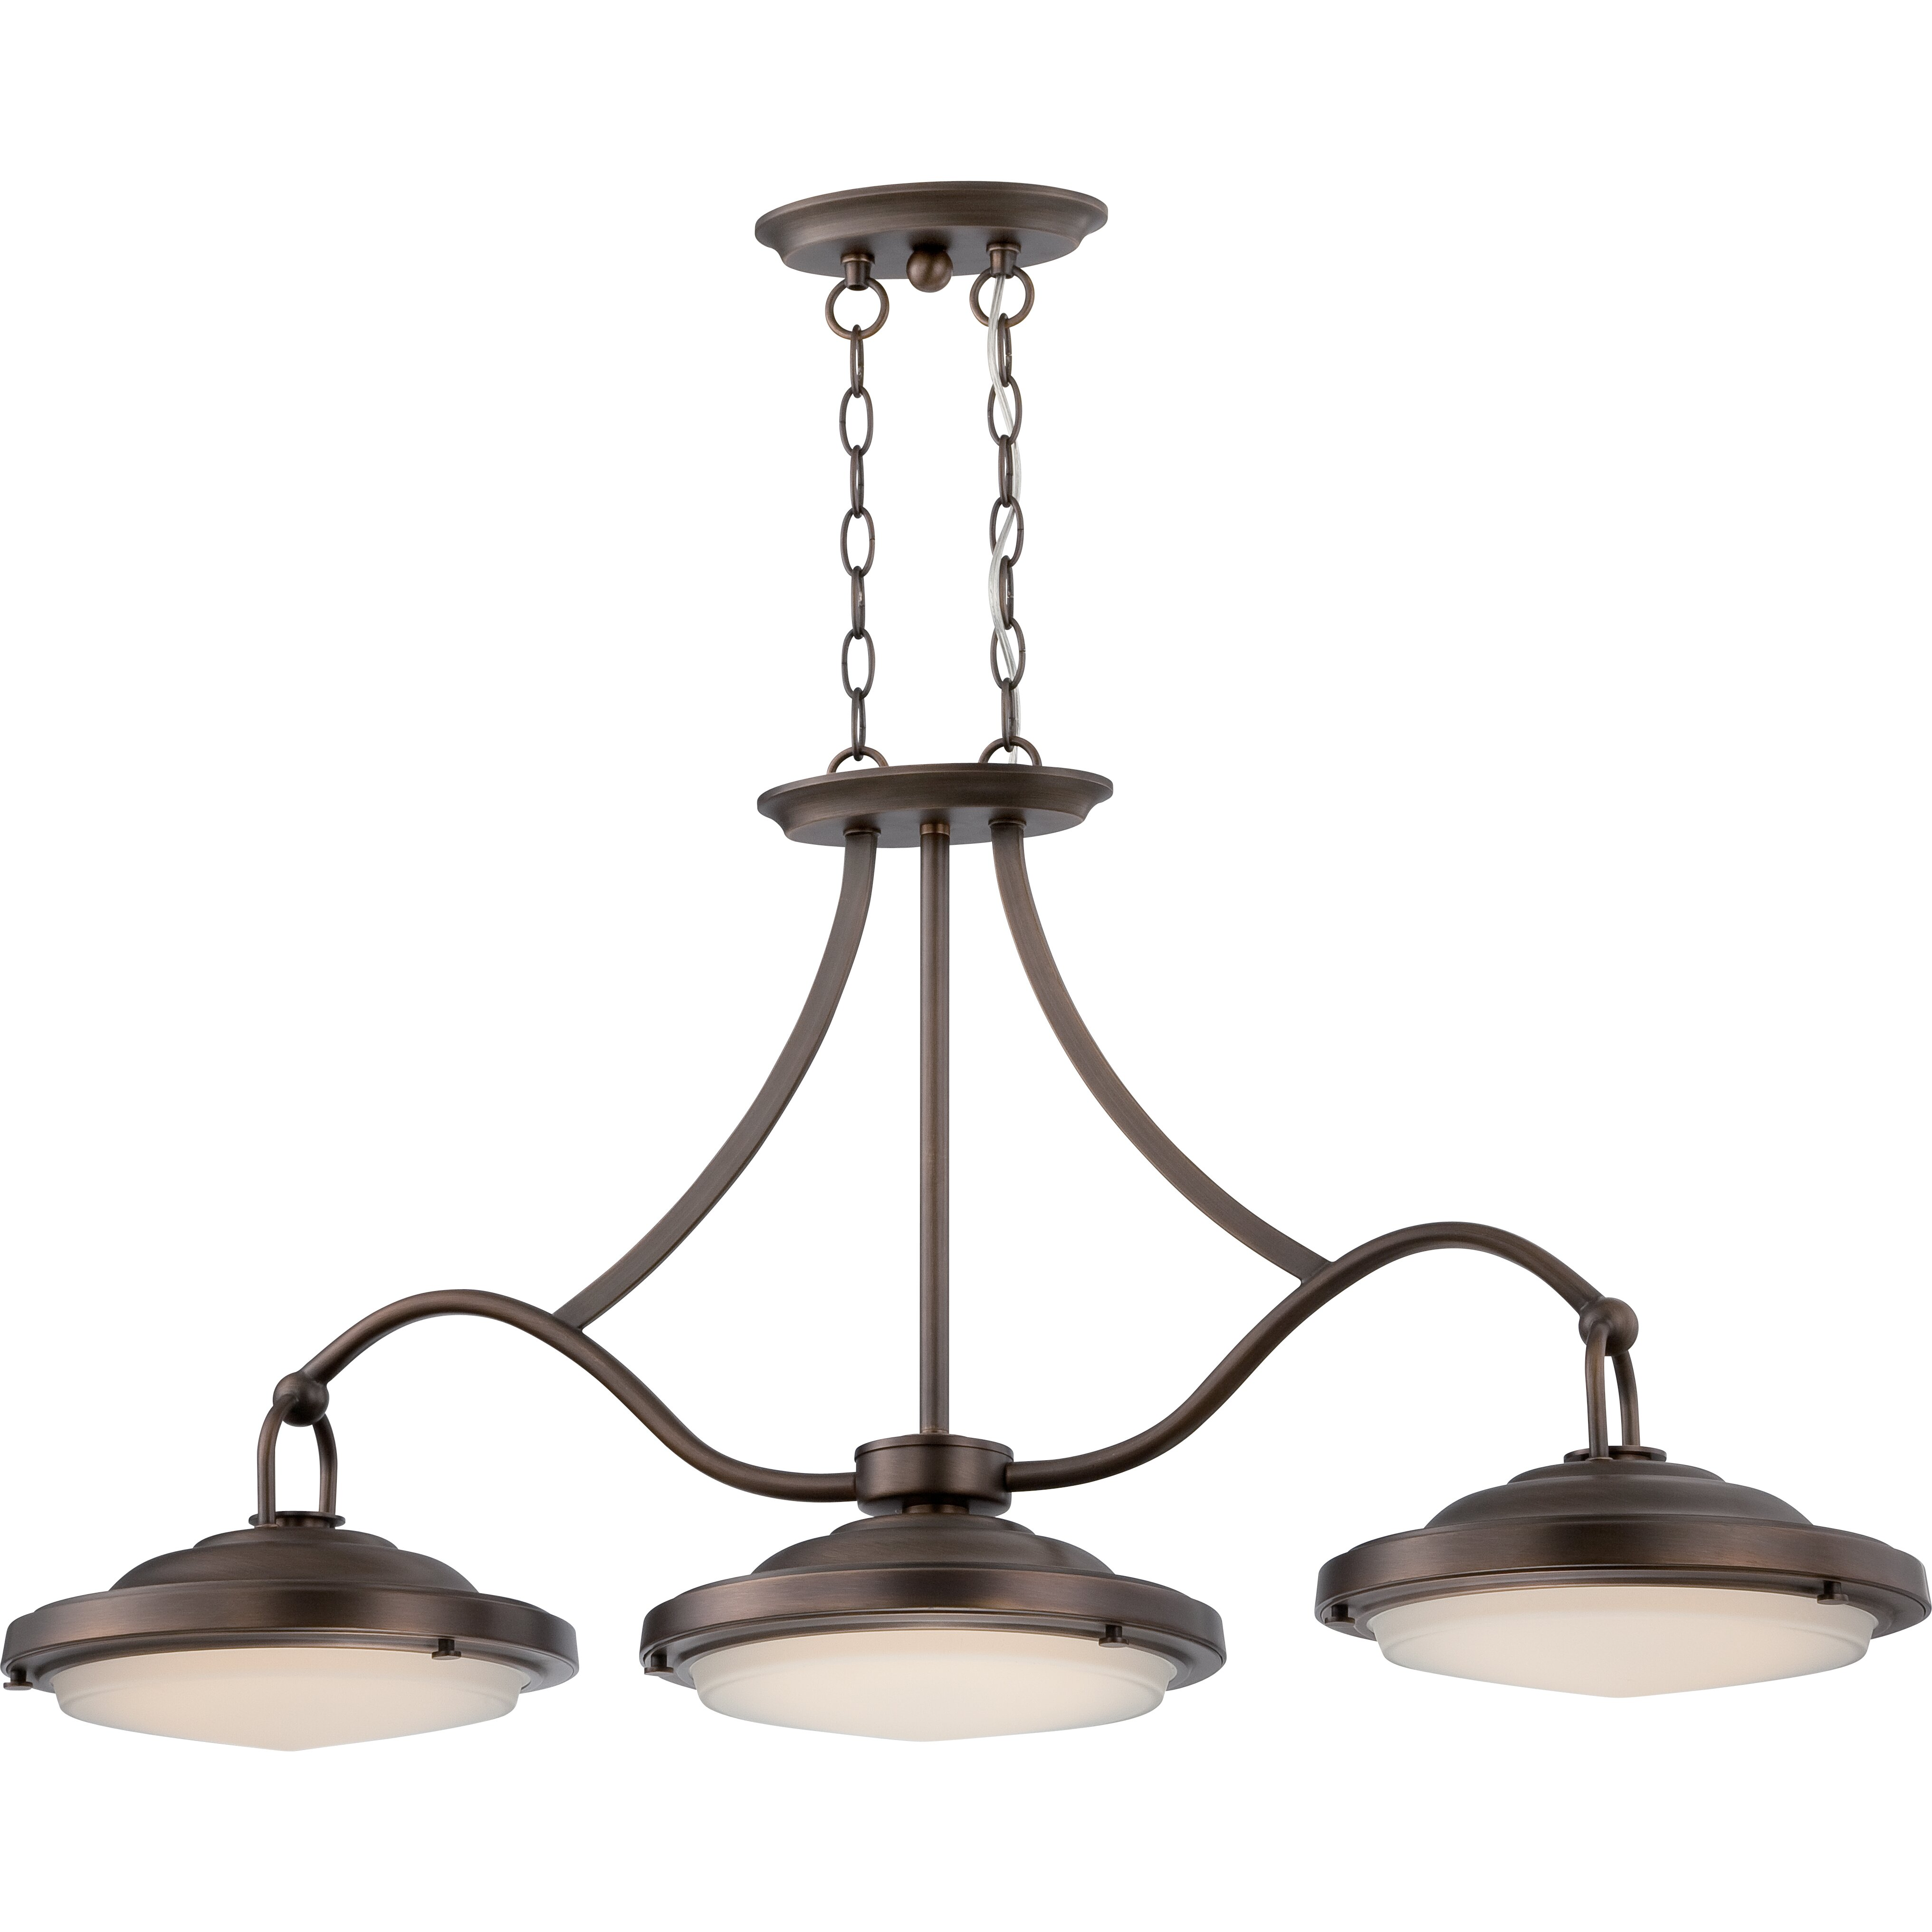 Kitchen Island Pendant Lighting: Sawyer 3 Light Kitchen Island Pendant